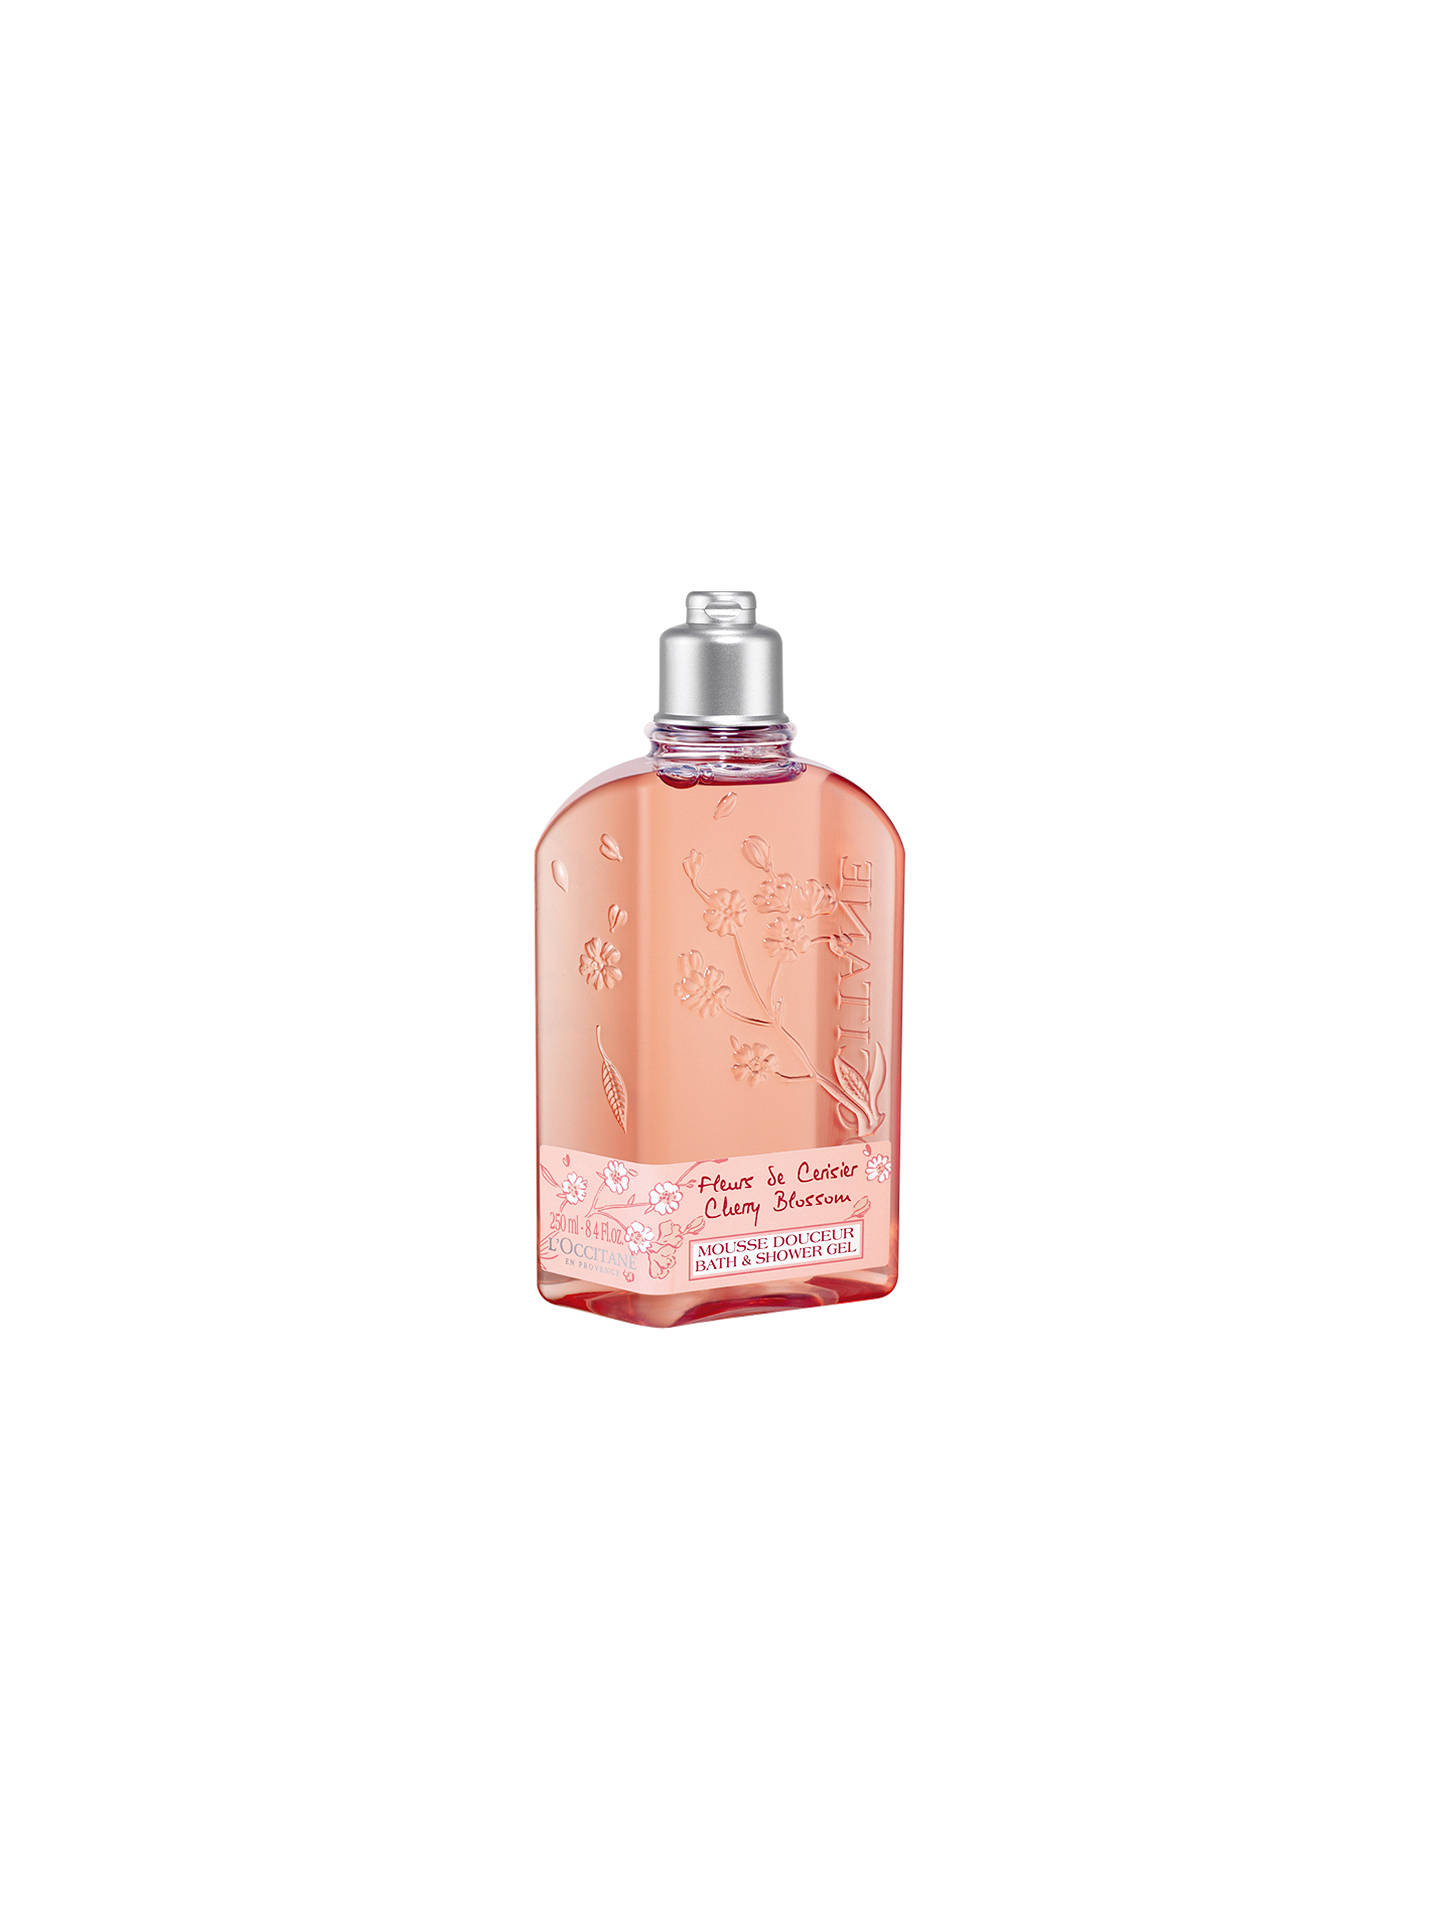 BuyLOccitane Cherry Blossom Shower Gel 250ml Online At Johnlewis